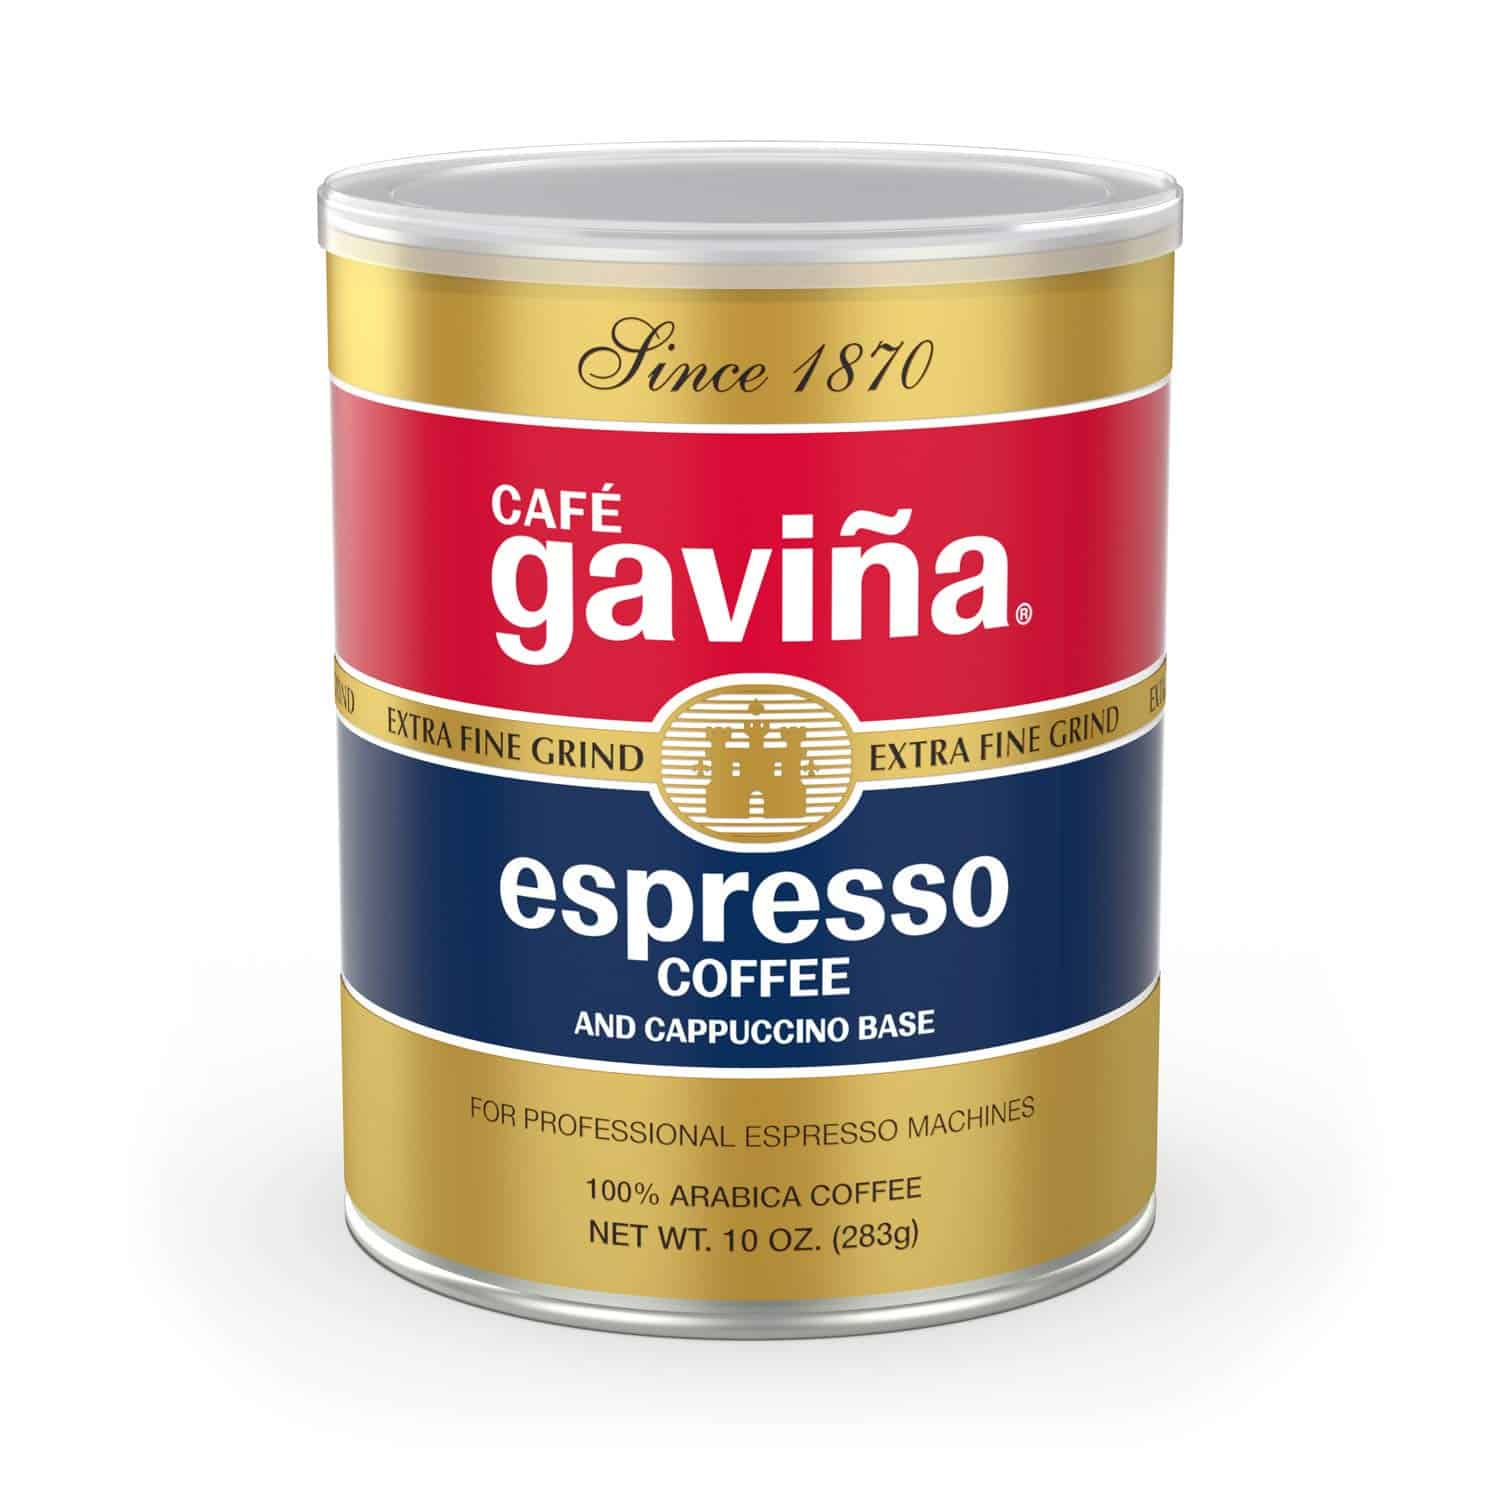 cafe gavina espresso ground coffee